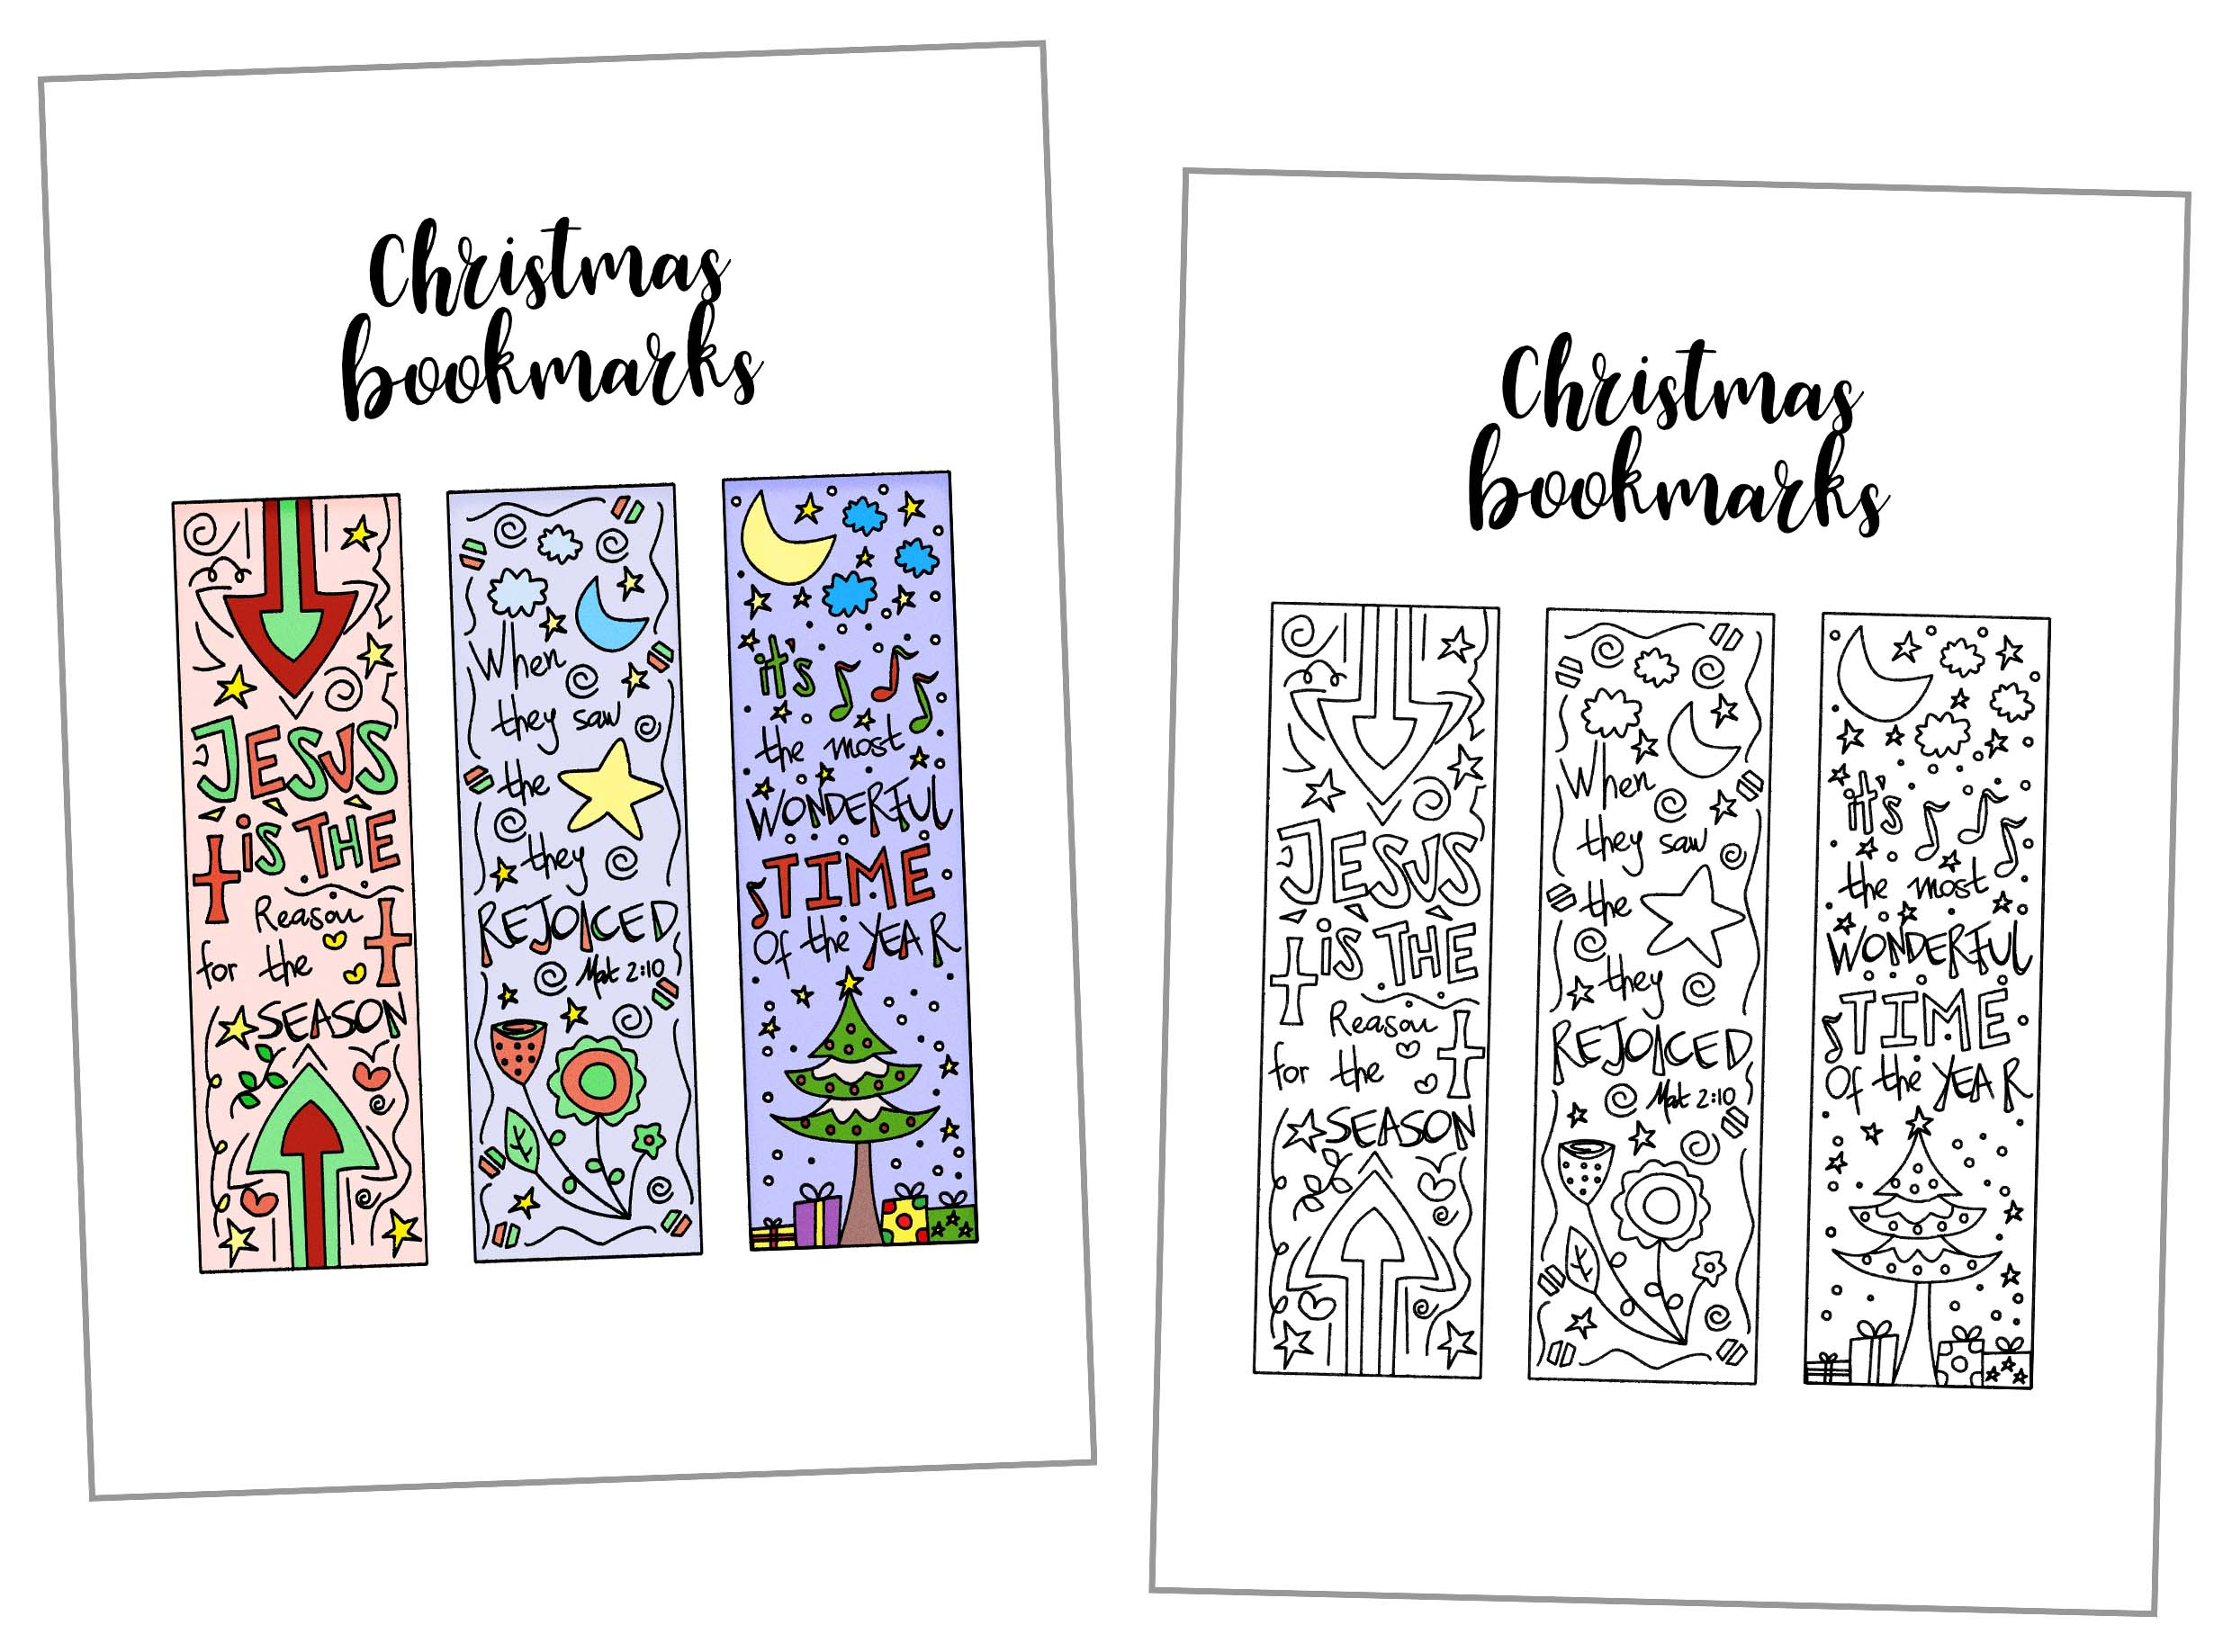 Coloring Christmas Bookmarks Free Printable ~ Daydream Into Reality - Free Printable Bookmarks For Christmas